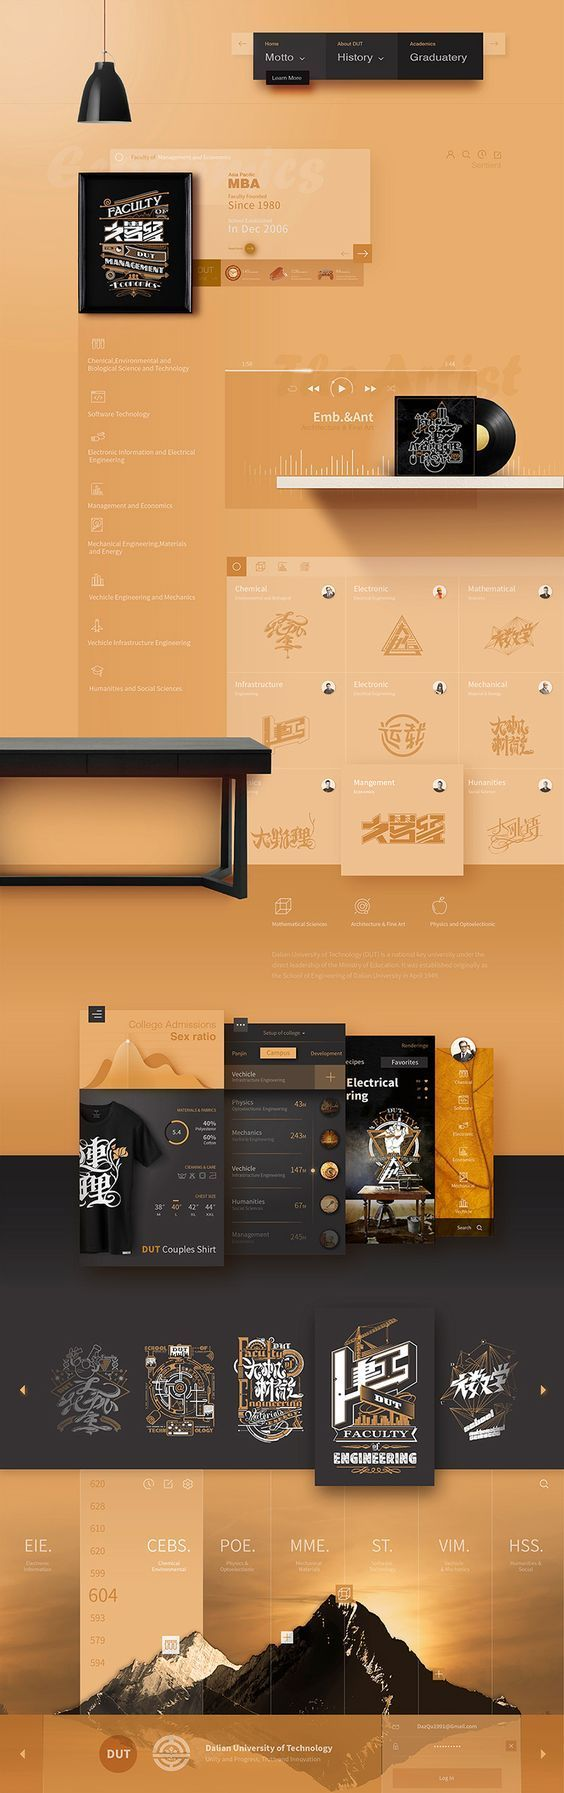 Moodboard | Quickly build beautiful moodboards and easily share the results